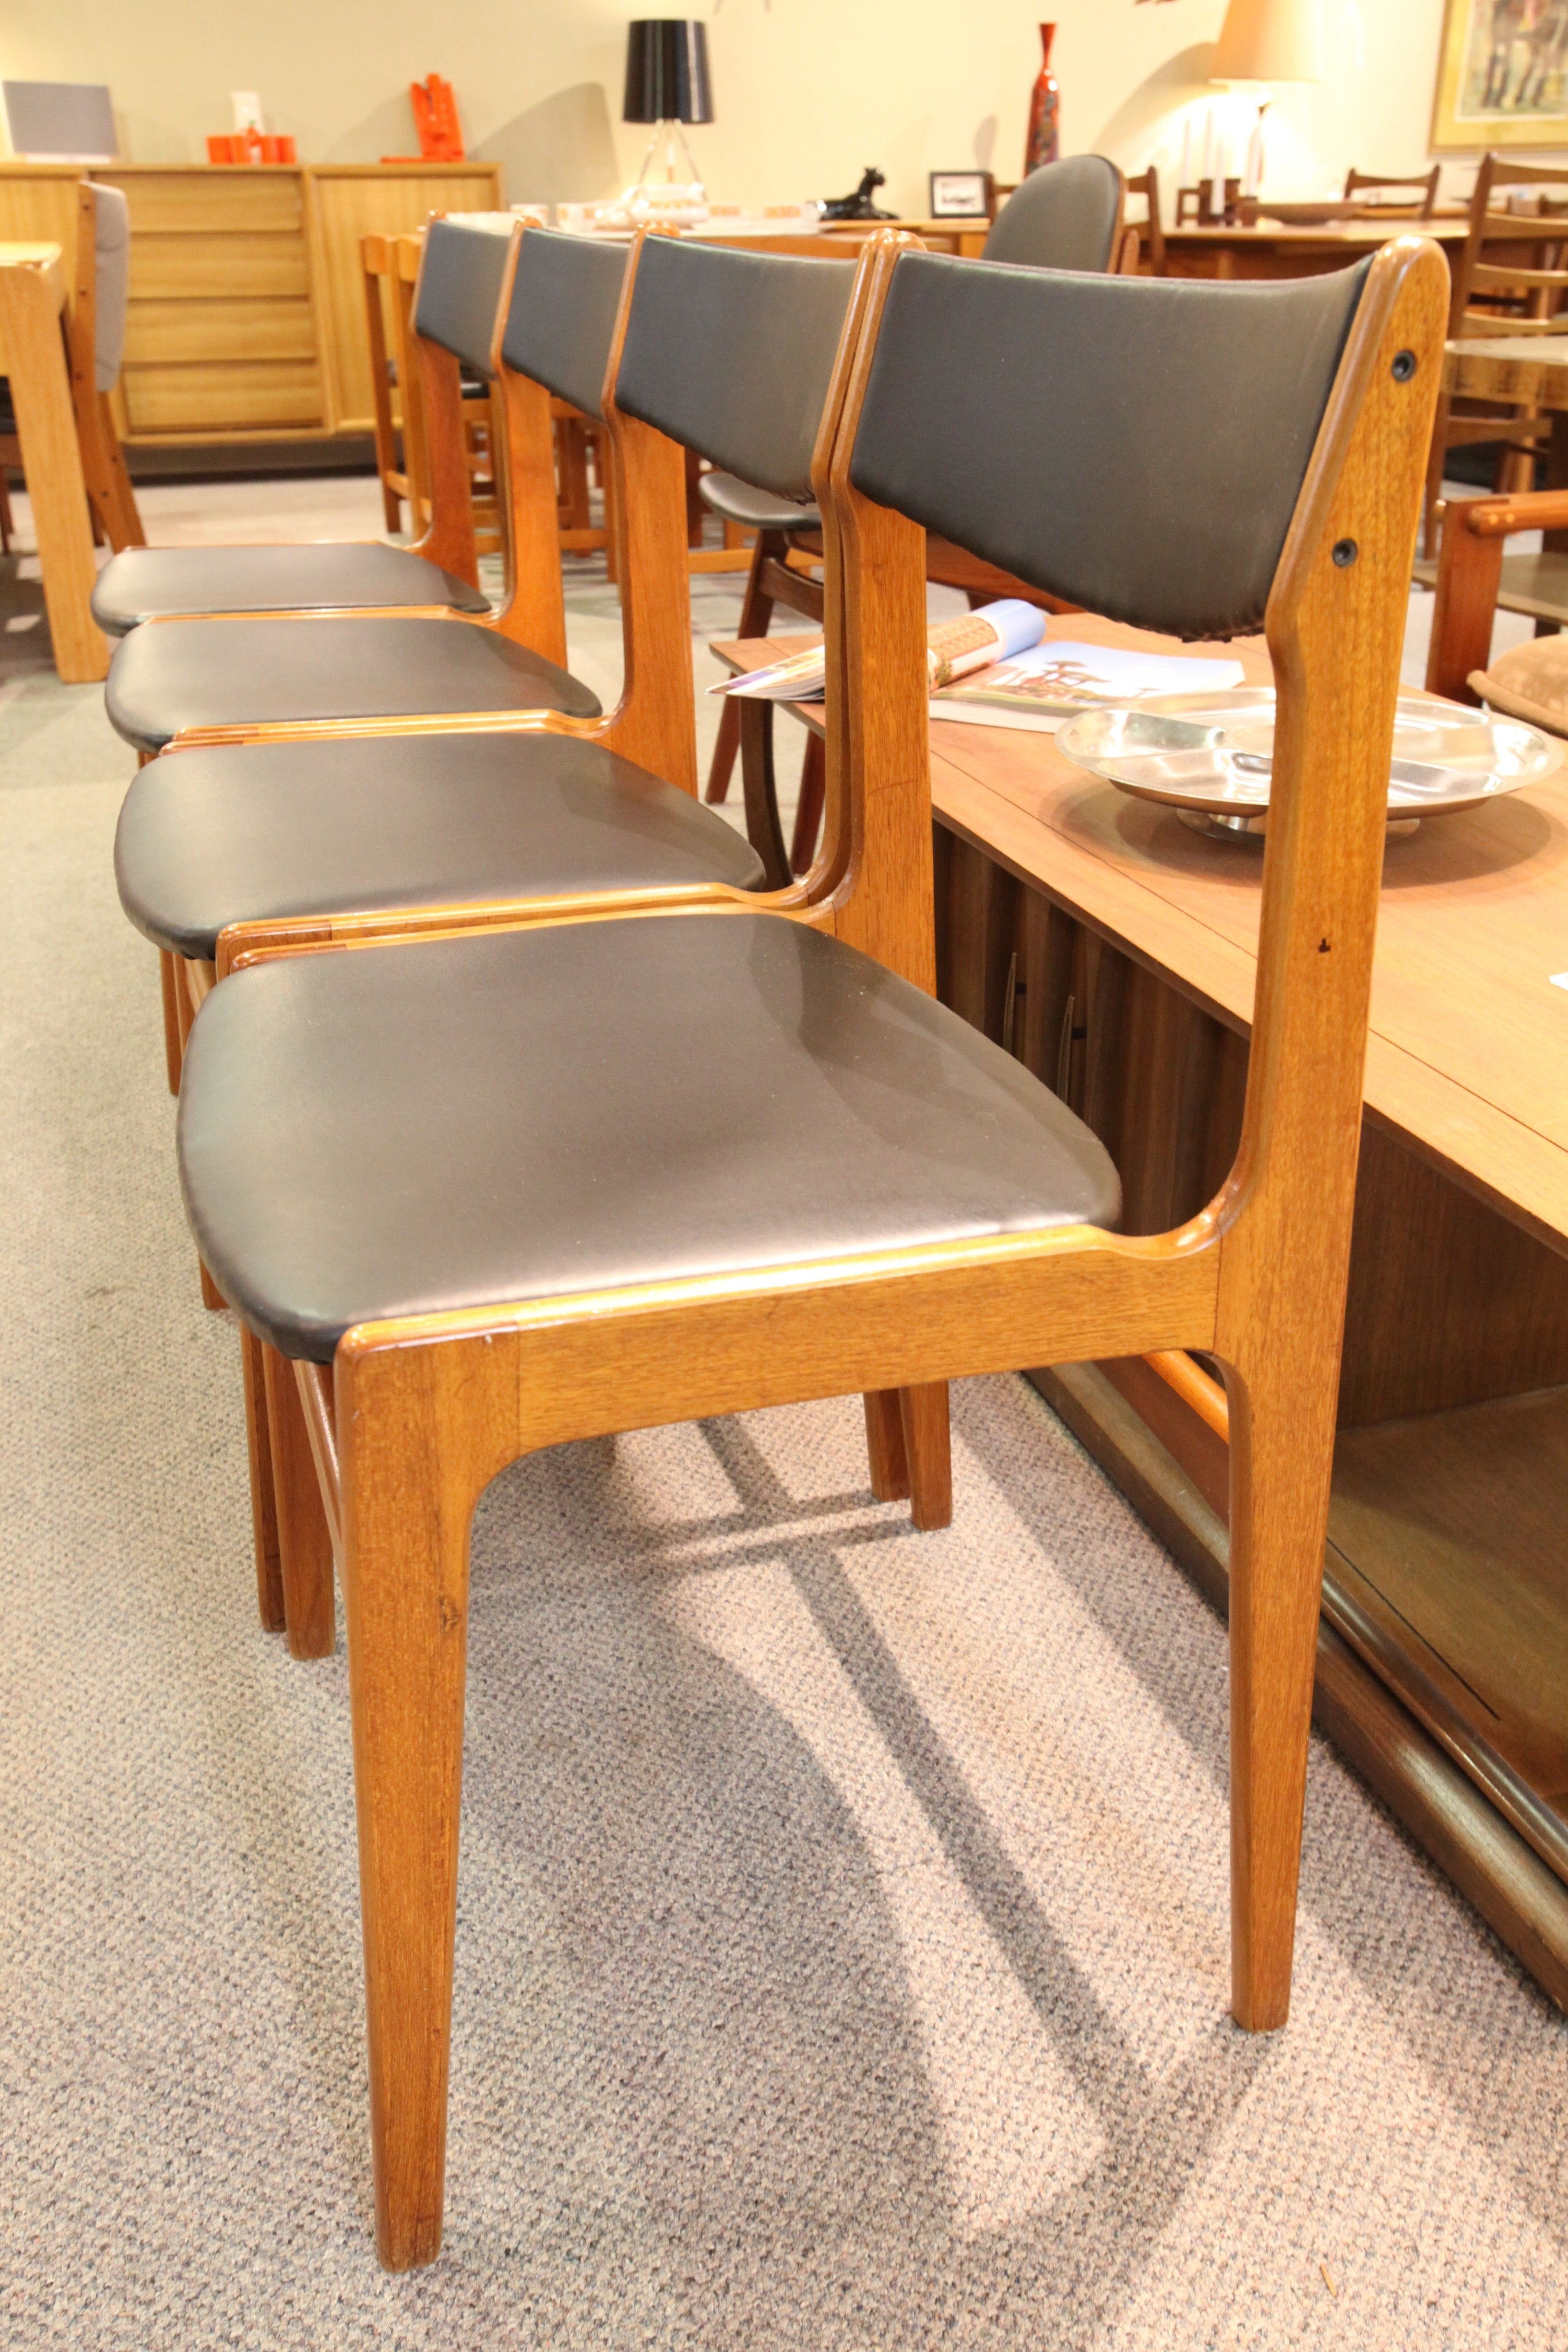 Set of 4 Teak Dining Chairs